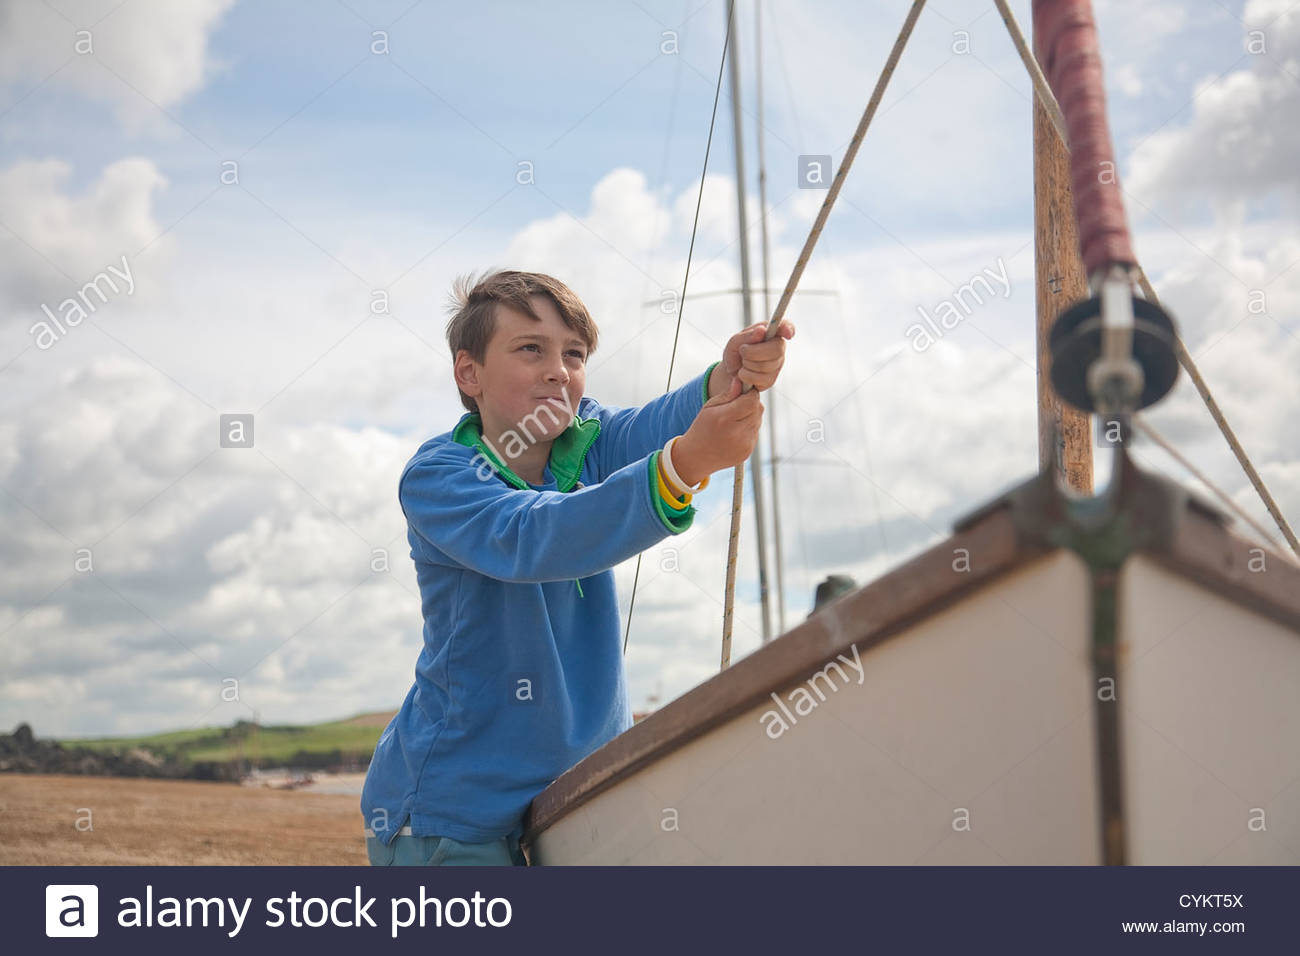 Boy pulling at sails on boat - Stock Image